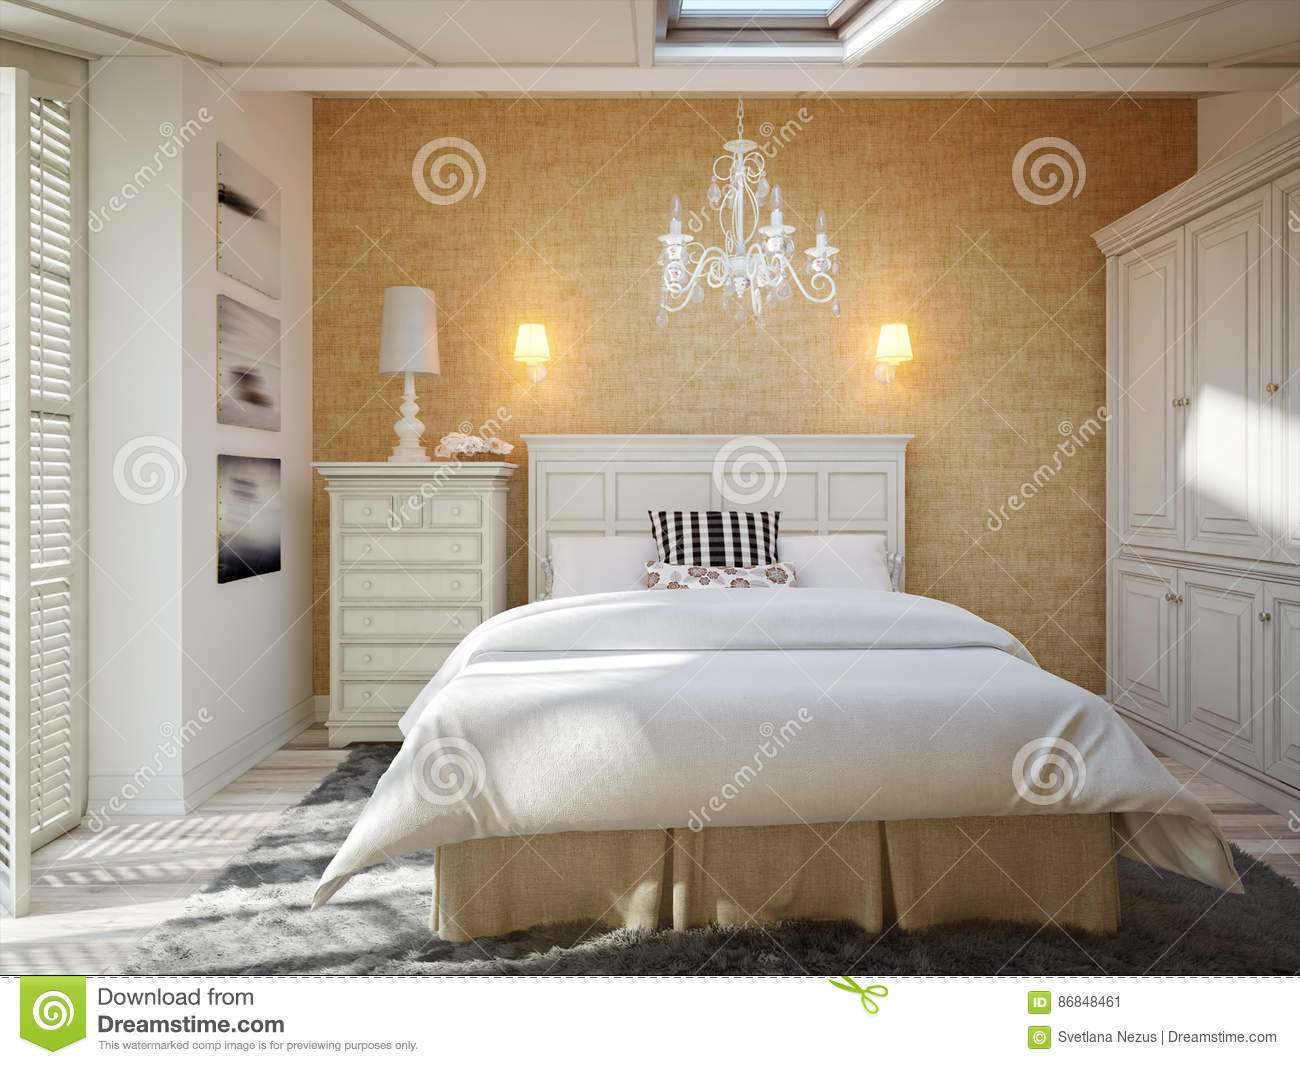 Beautiful cozy traditional style bedroom decor royalty free stock photo - Beautiful snooze bedroom suites packing comfort in style ...